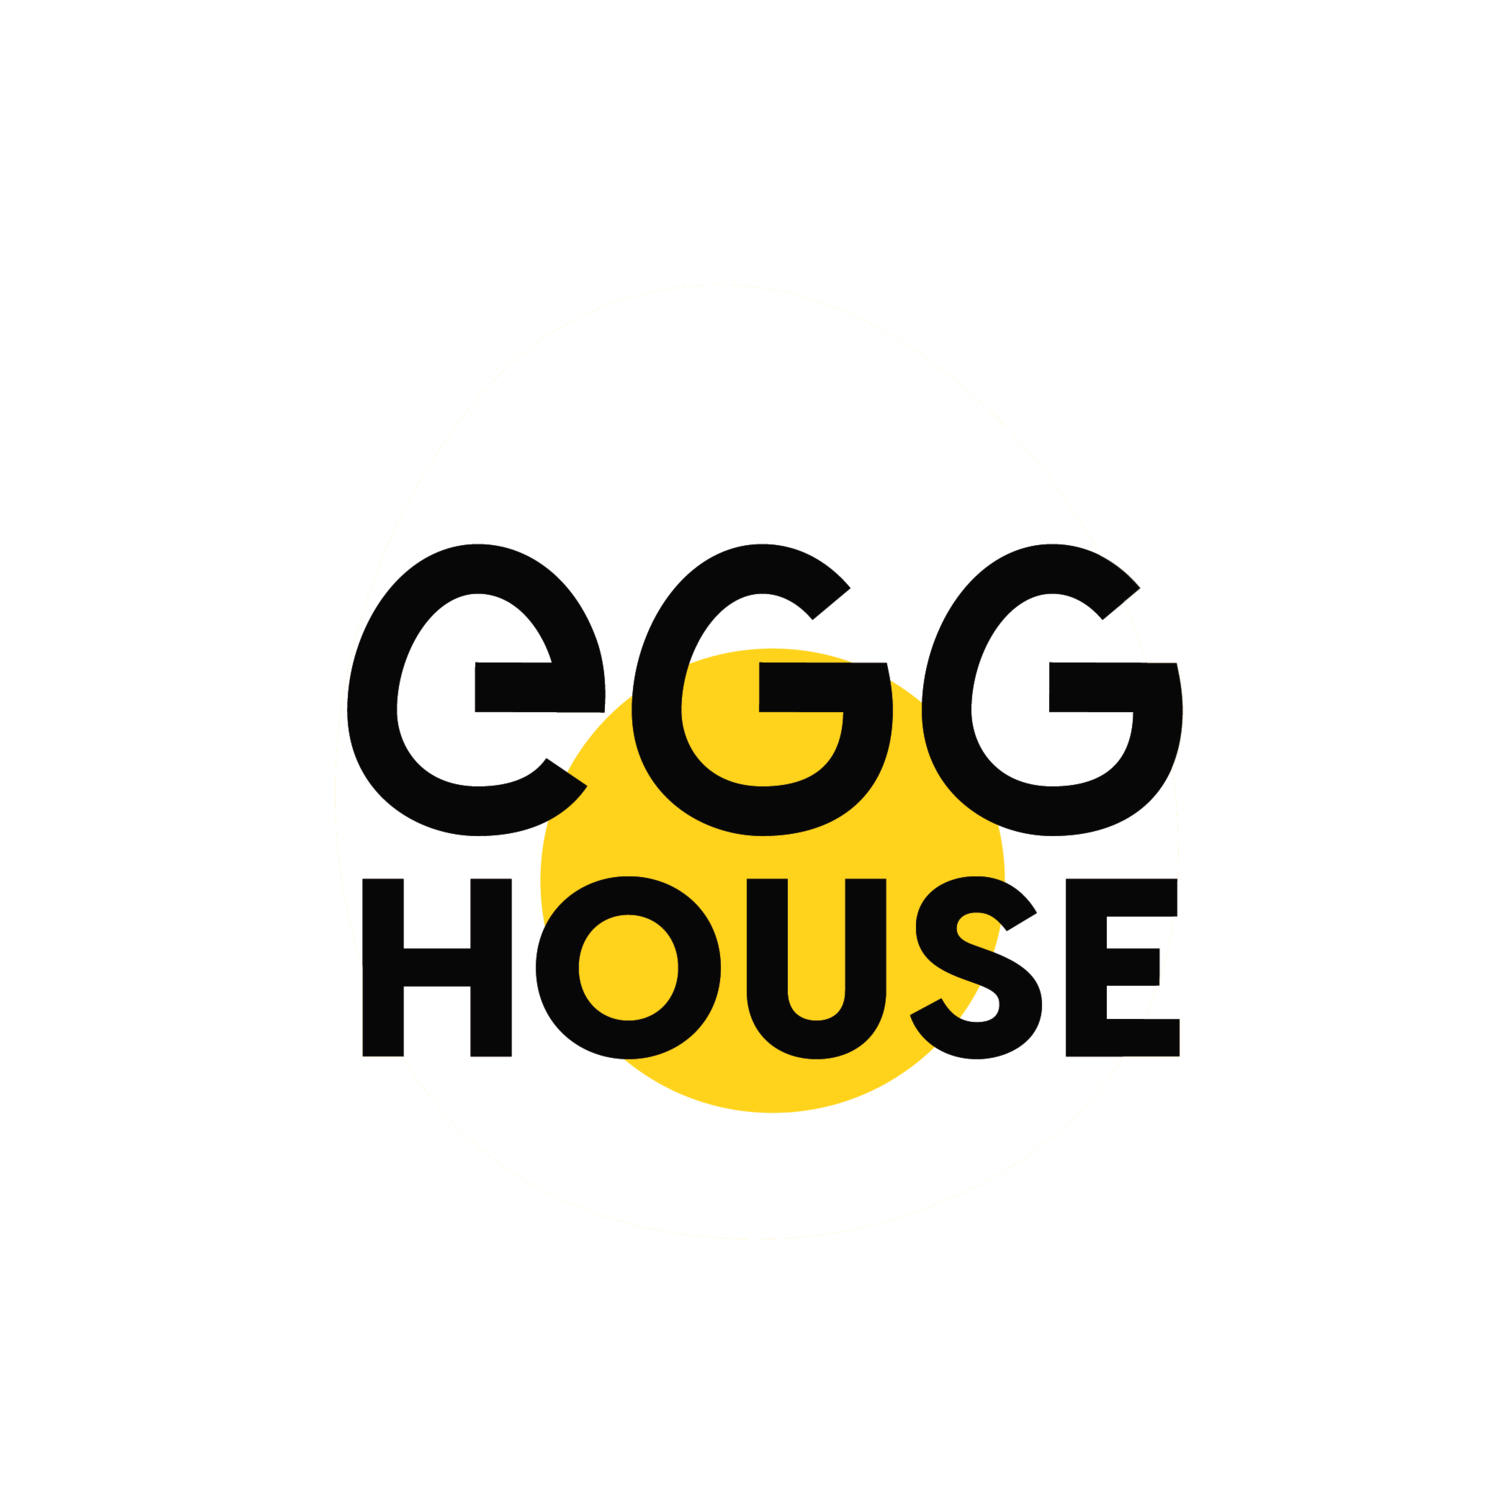 THE EGG HOUSE